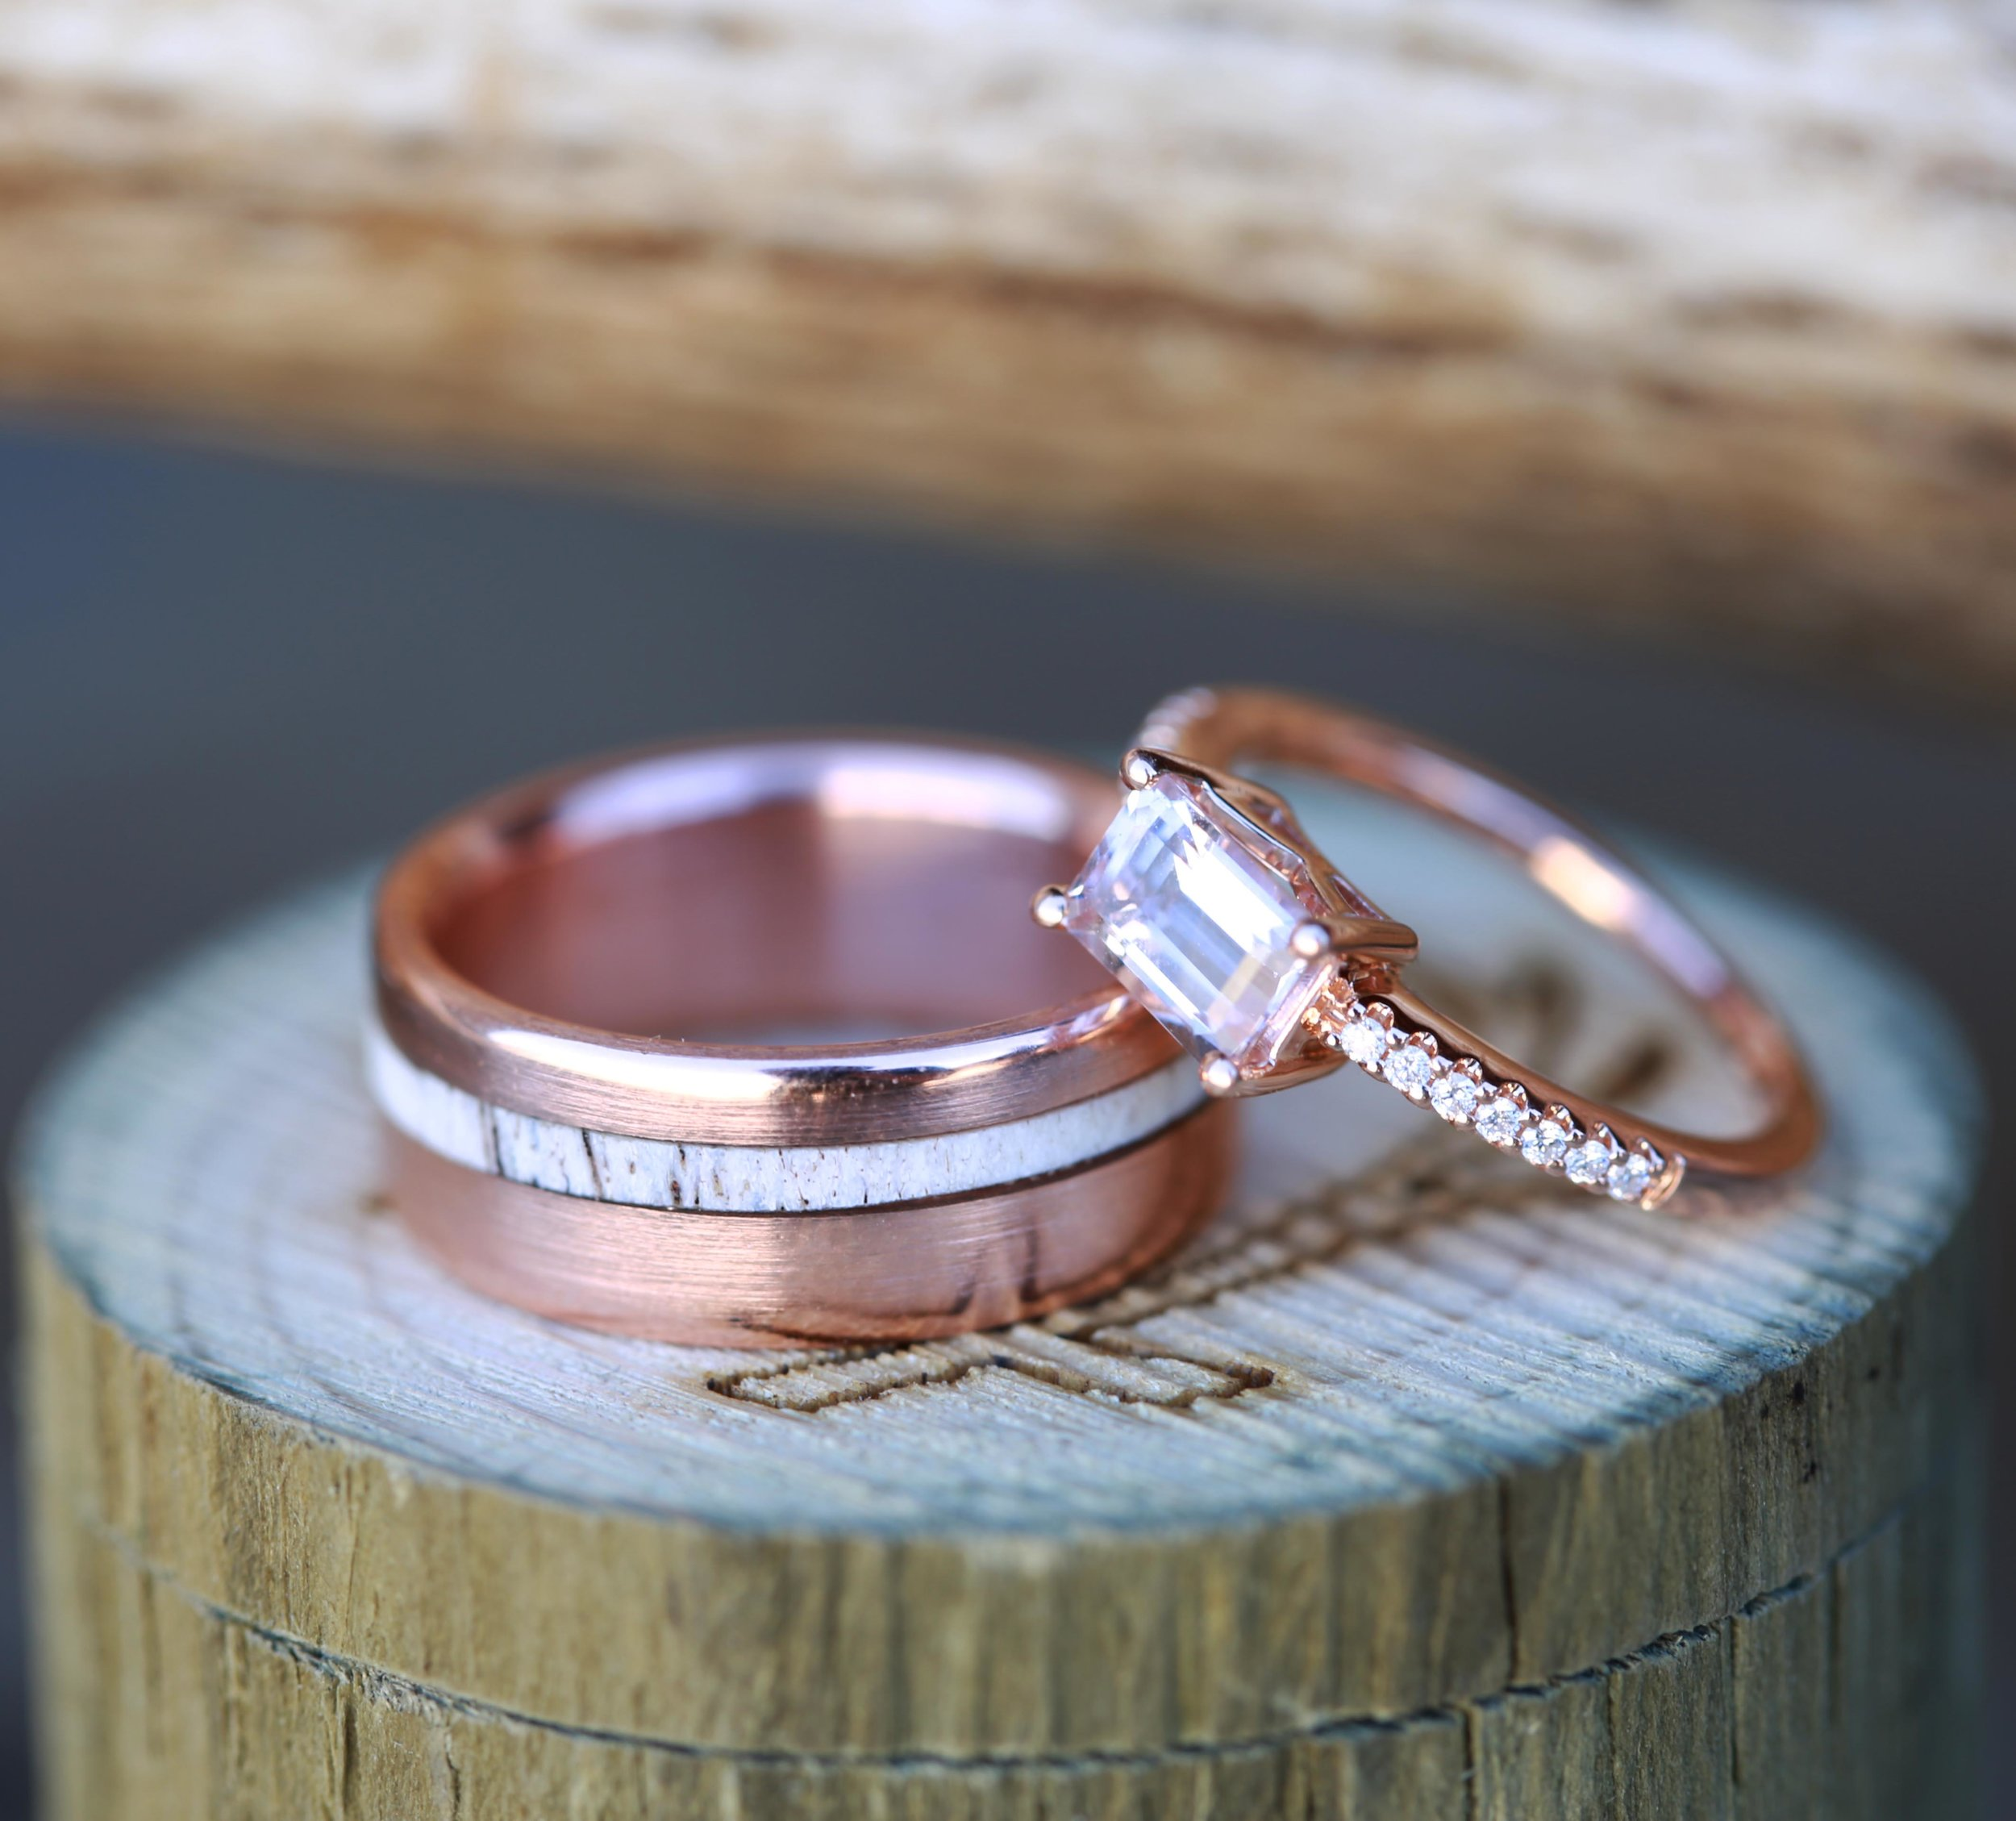 Superbe WOMENu0027S MORGANITE WEDDING RING U0026 MENu0027S ANTLER WEDDING BAND (available In  14K Rose Gold) U2014 Staghead Designs | Design Custom Wedding Bands | Wood U0026  Antler ...